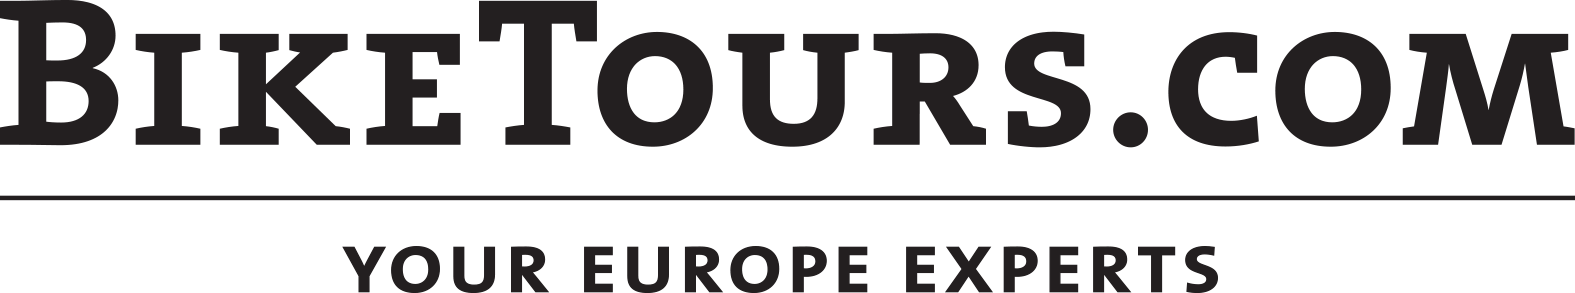 biketours_secondarylogo_black.png